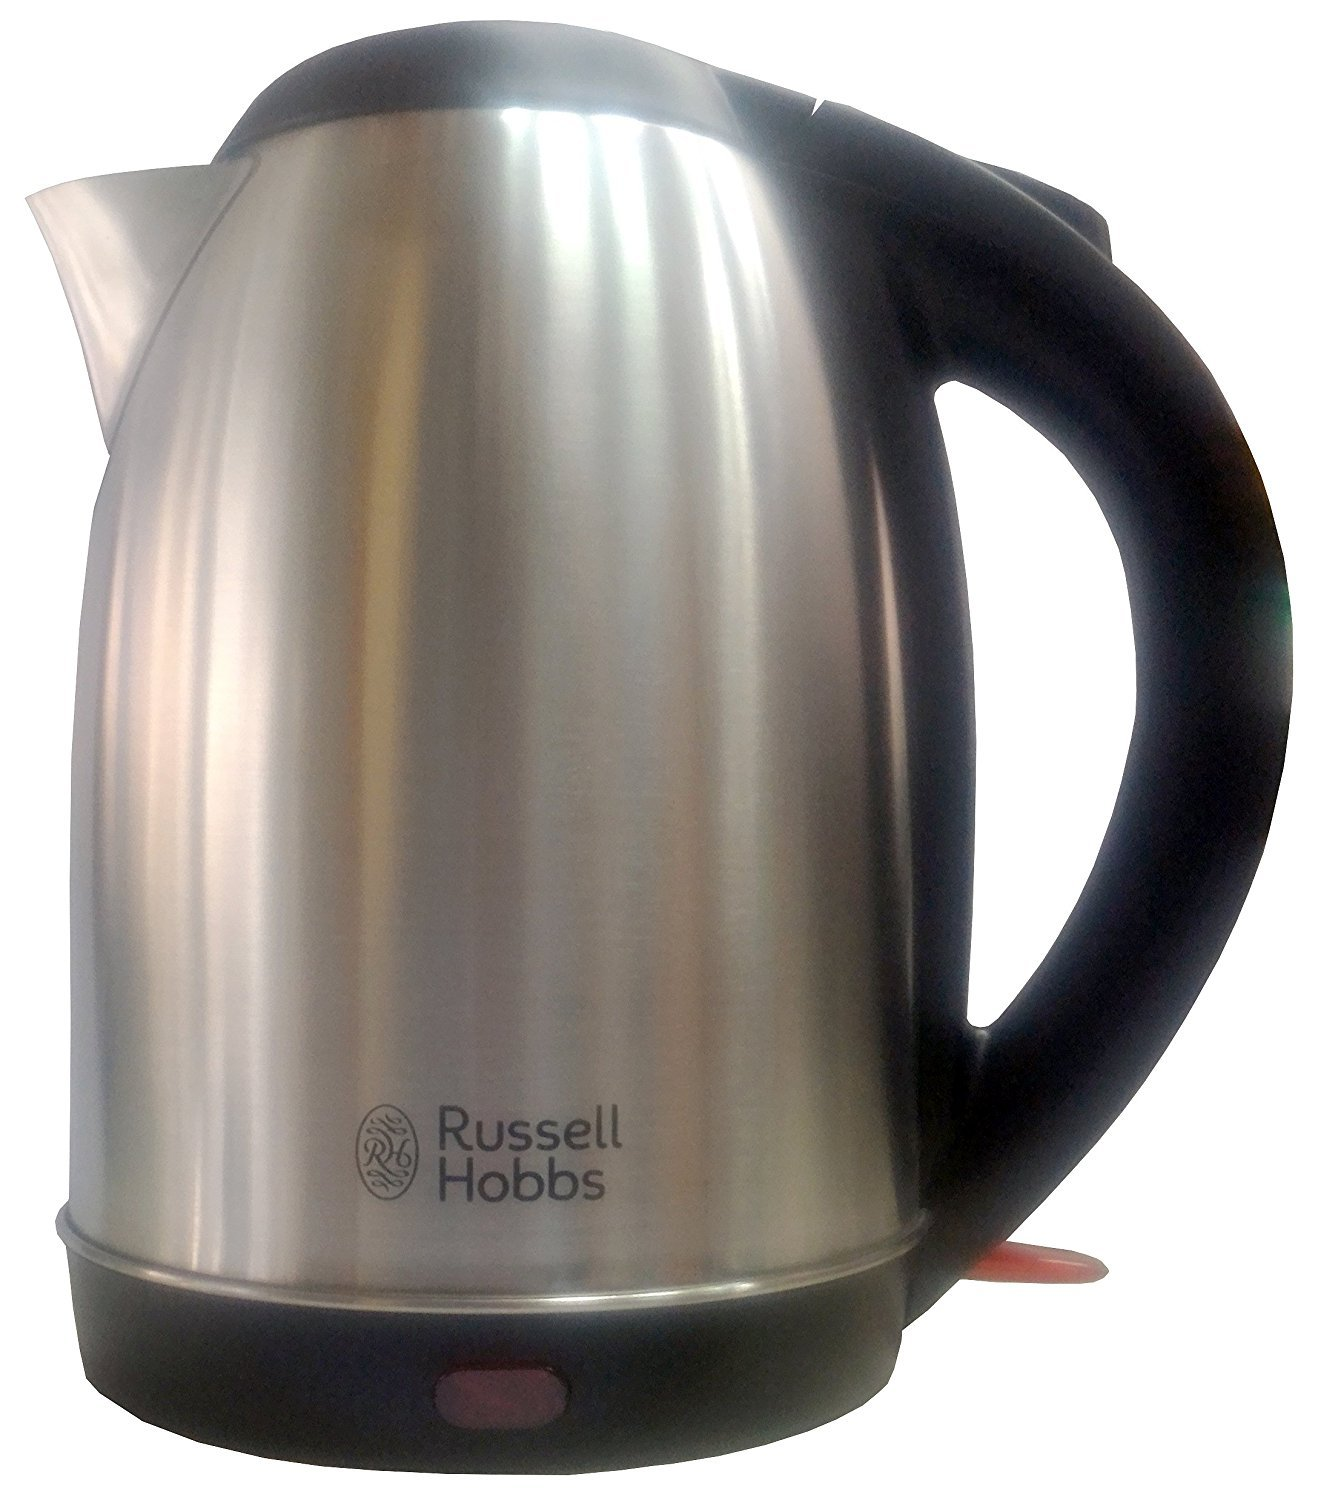 Russell Hobbs RJK1518 1.8L Electric Kettle